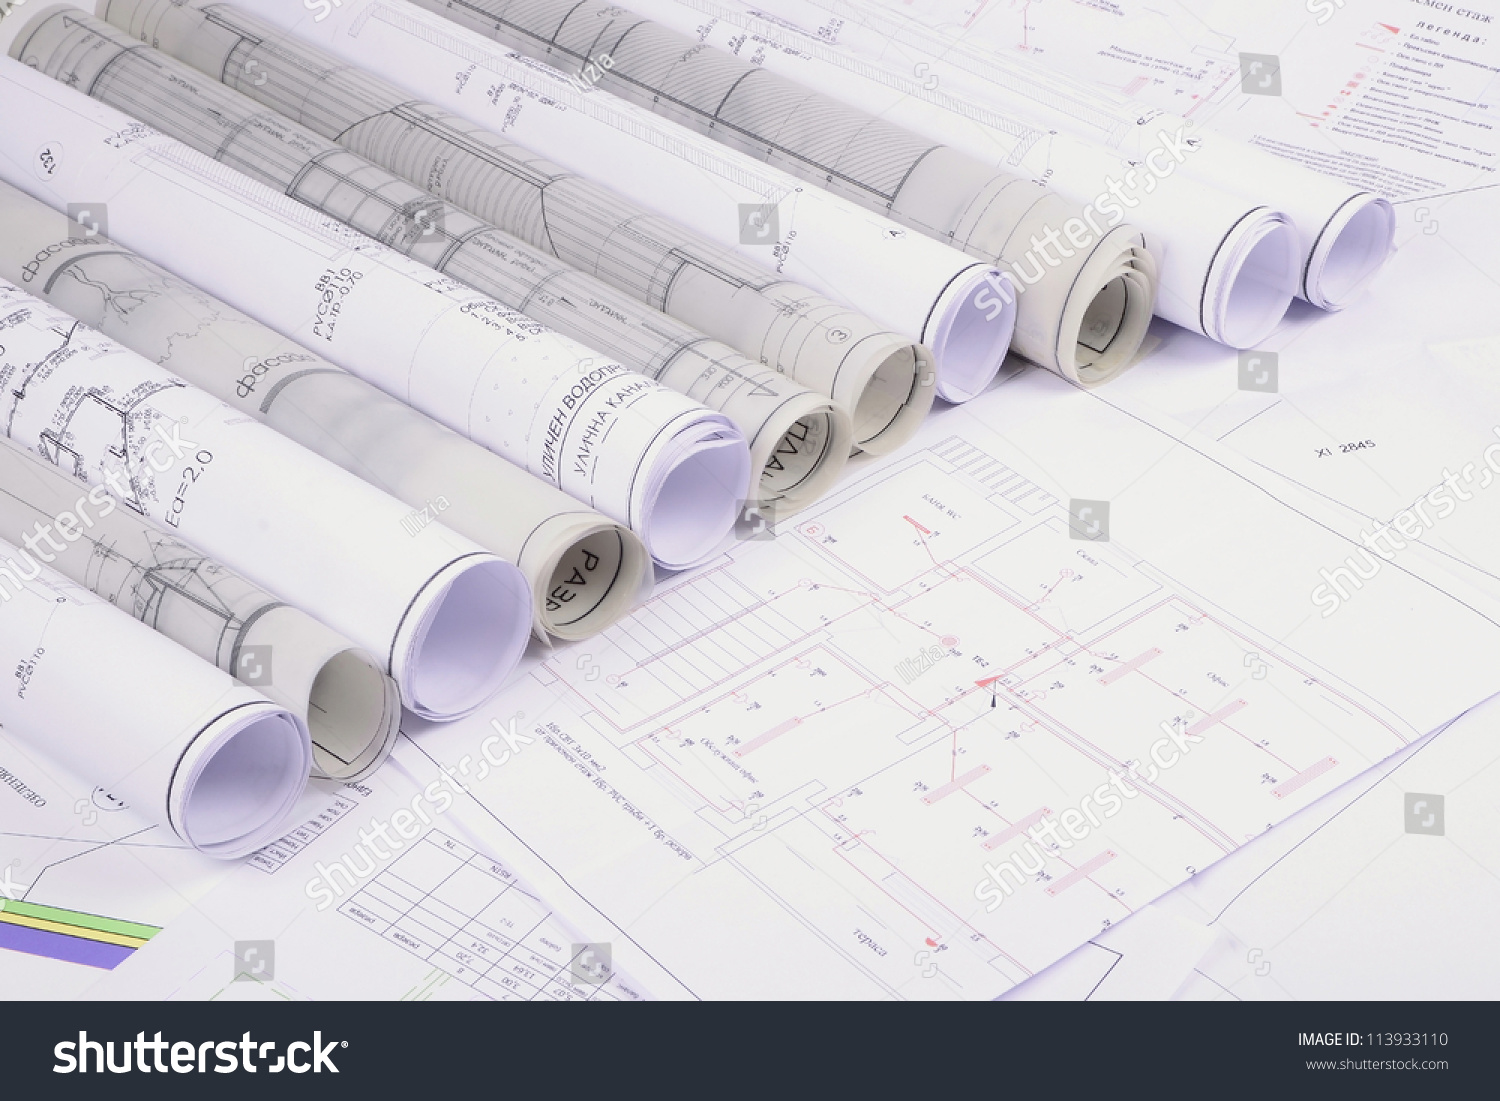 Architectural plans of the old paper tracing paper